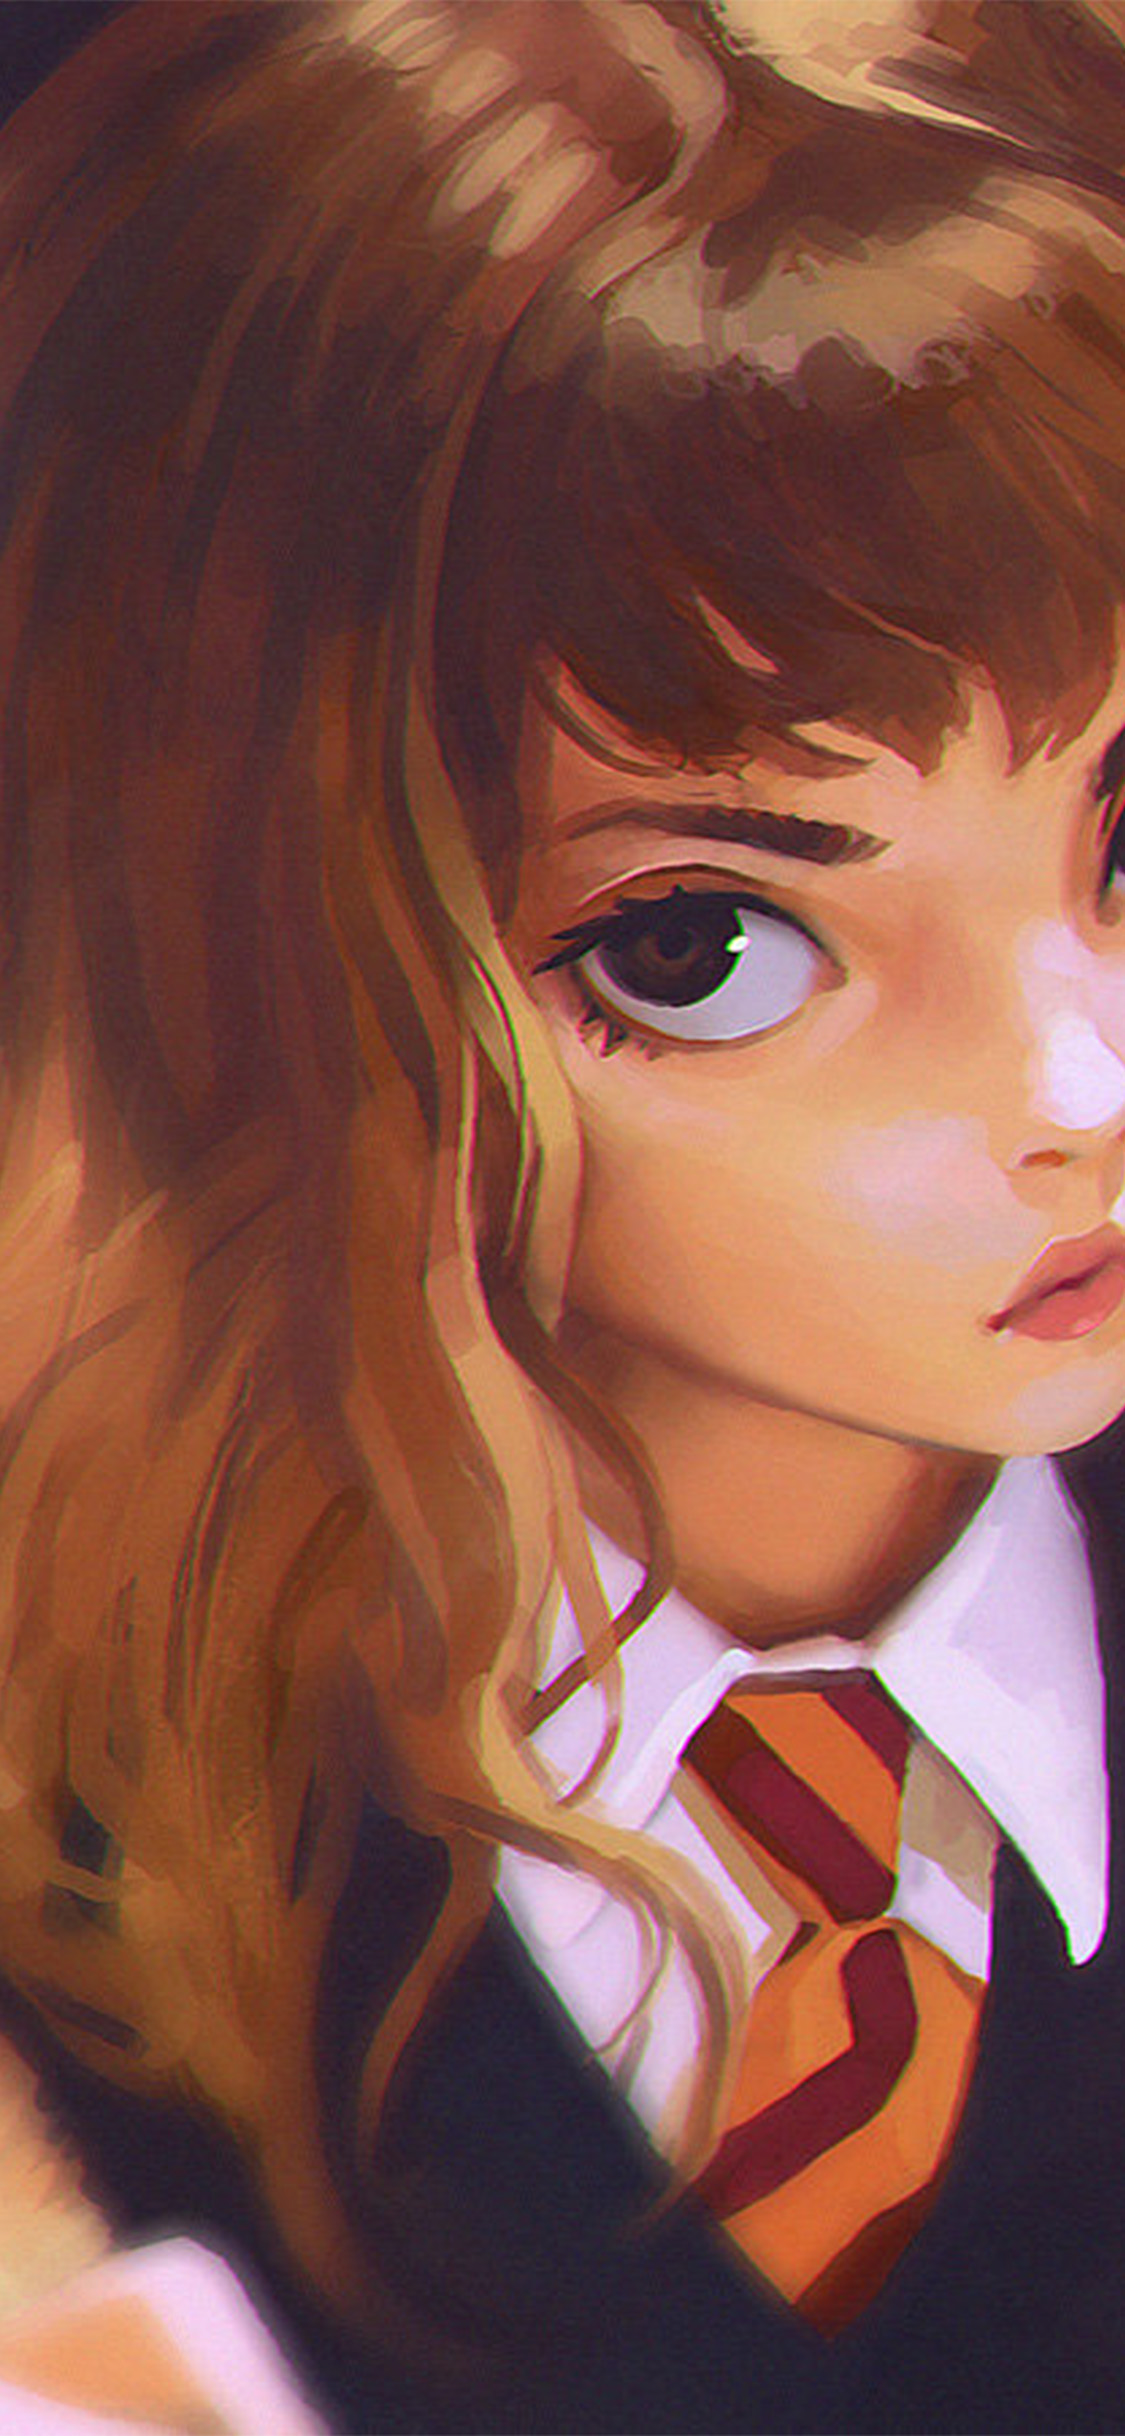 Cute Pastel Wallpaper For Iphone Bd65 Hermione Harry Potter Liya Art Illustration Wallpaper